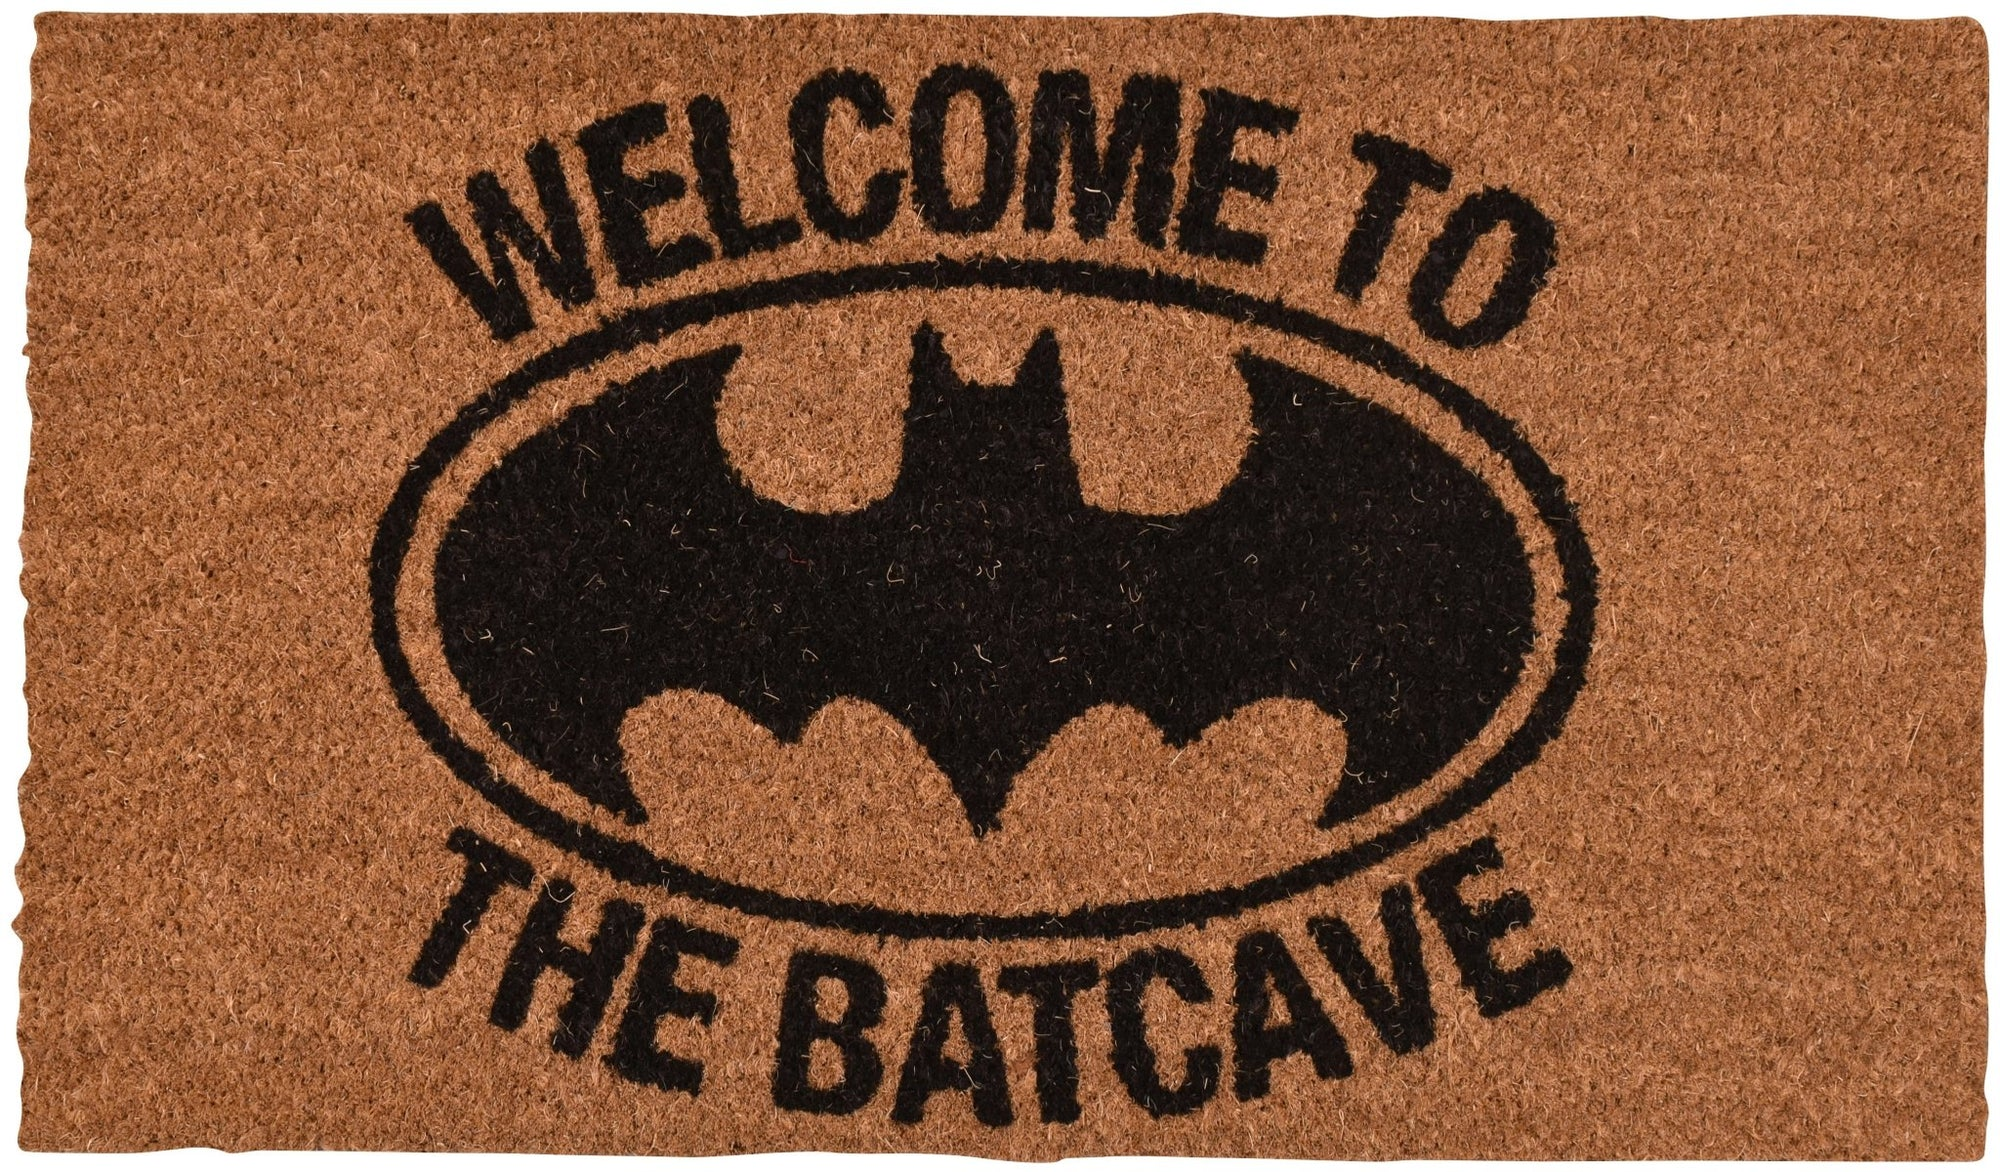 DC COMICS BATMAN WELCOME TO THE BATCAVE DOORMAT - EvoRetro Lets Game